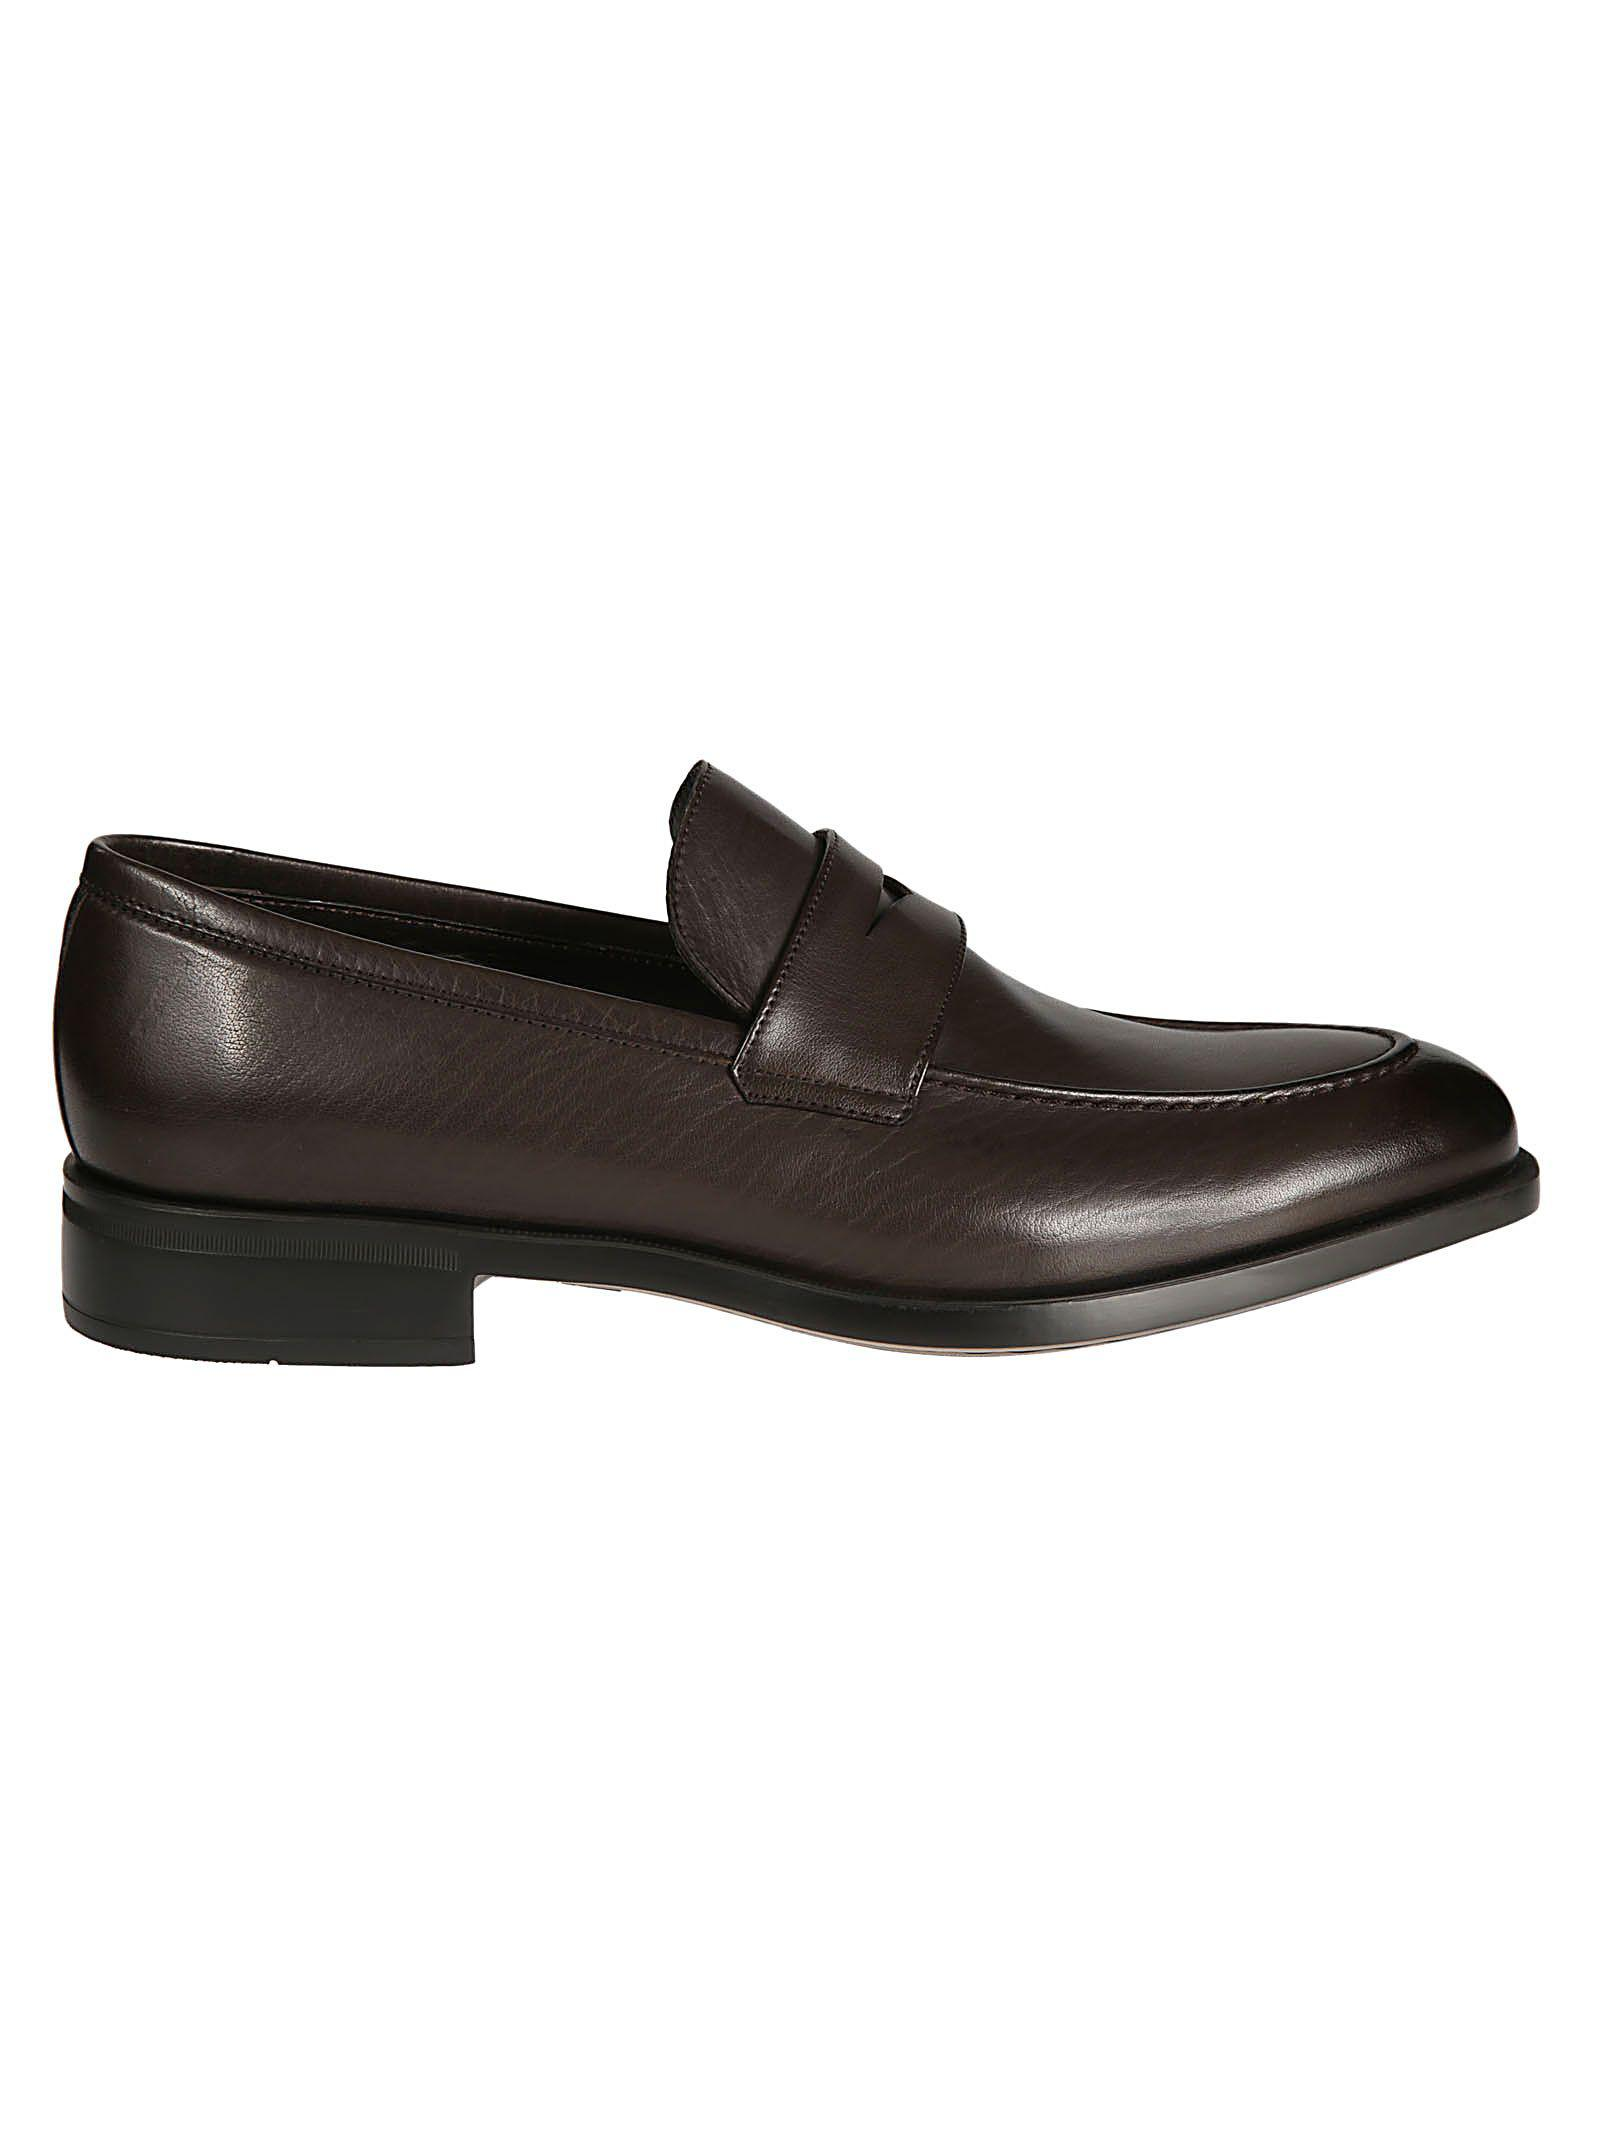 0ae1e29b1b7 Lyst - Moreschi Men s Brown Leather Loafers in Brown for Men